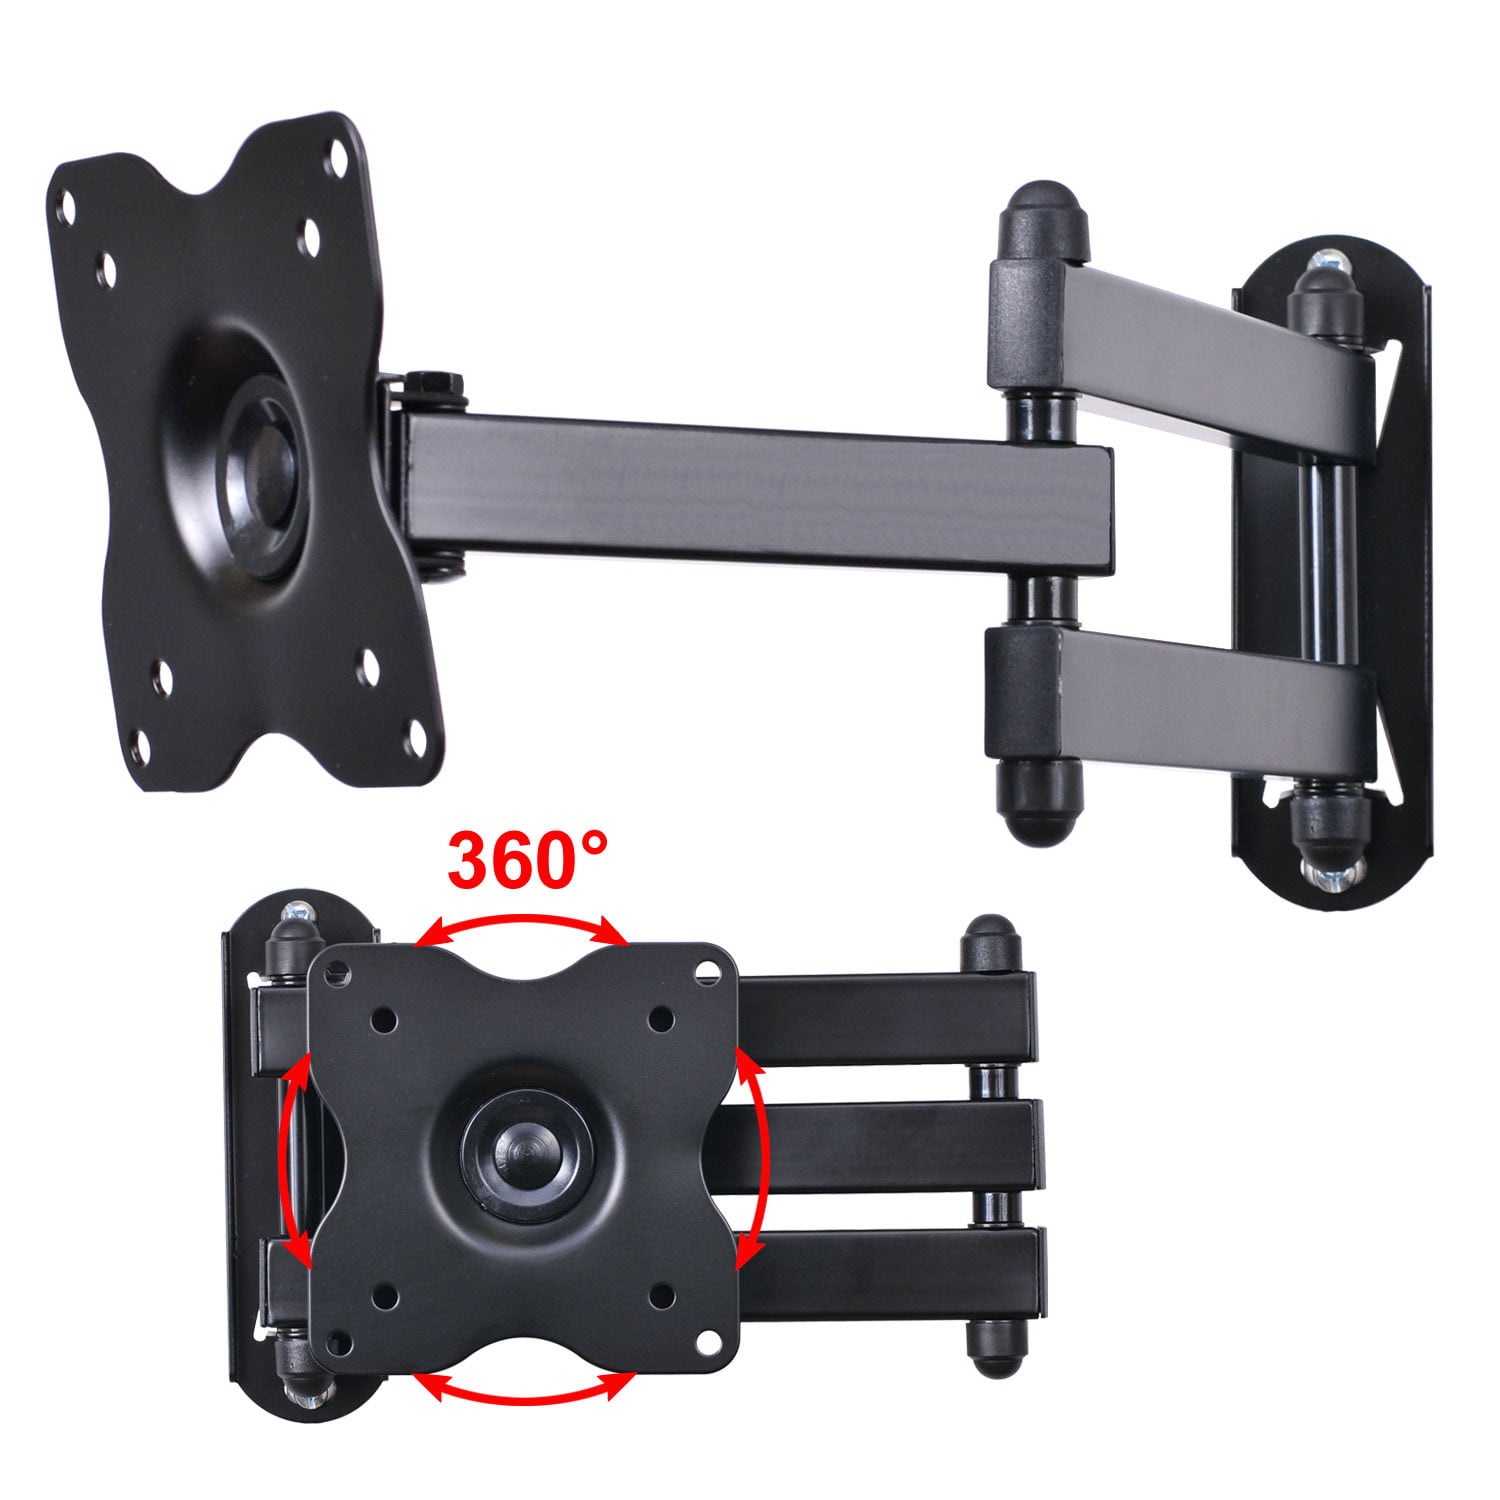 Swing Arm Wall Mount for LG 15-24 Inch Models LCD Flat Panel Screen TV/&Monitor